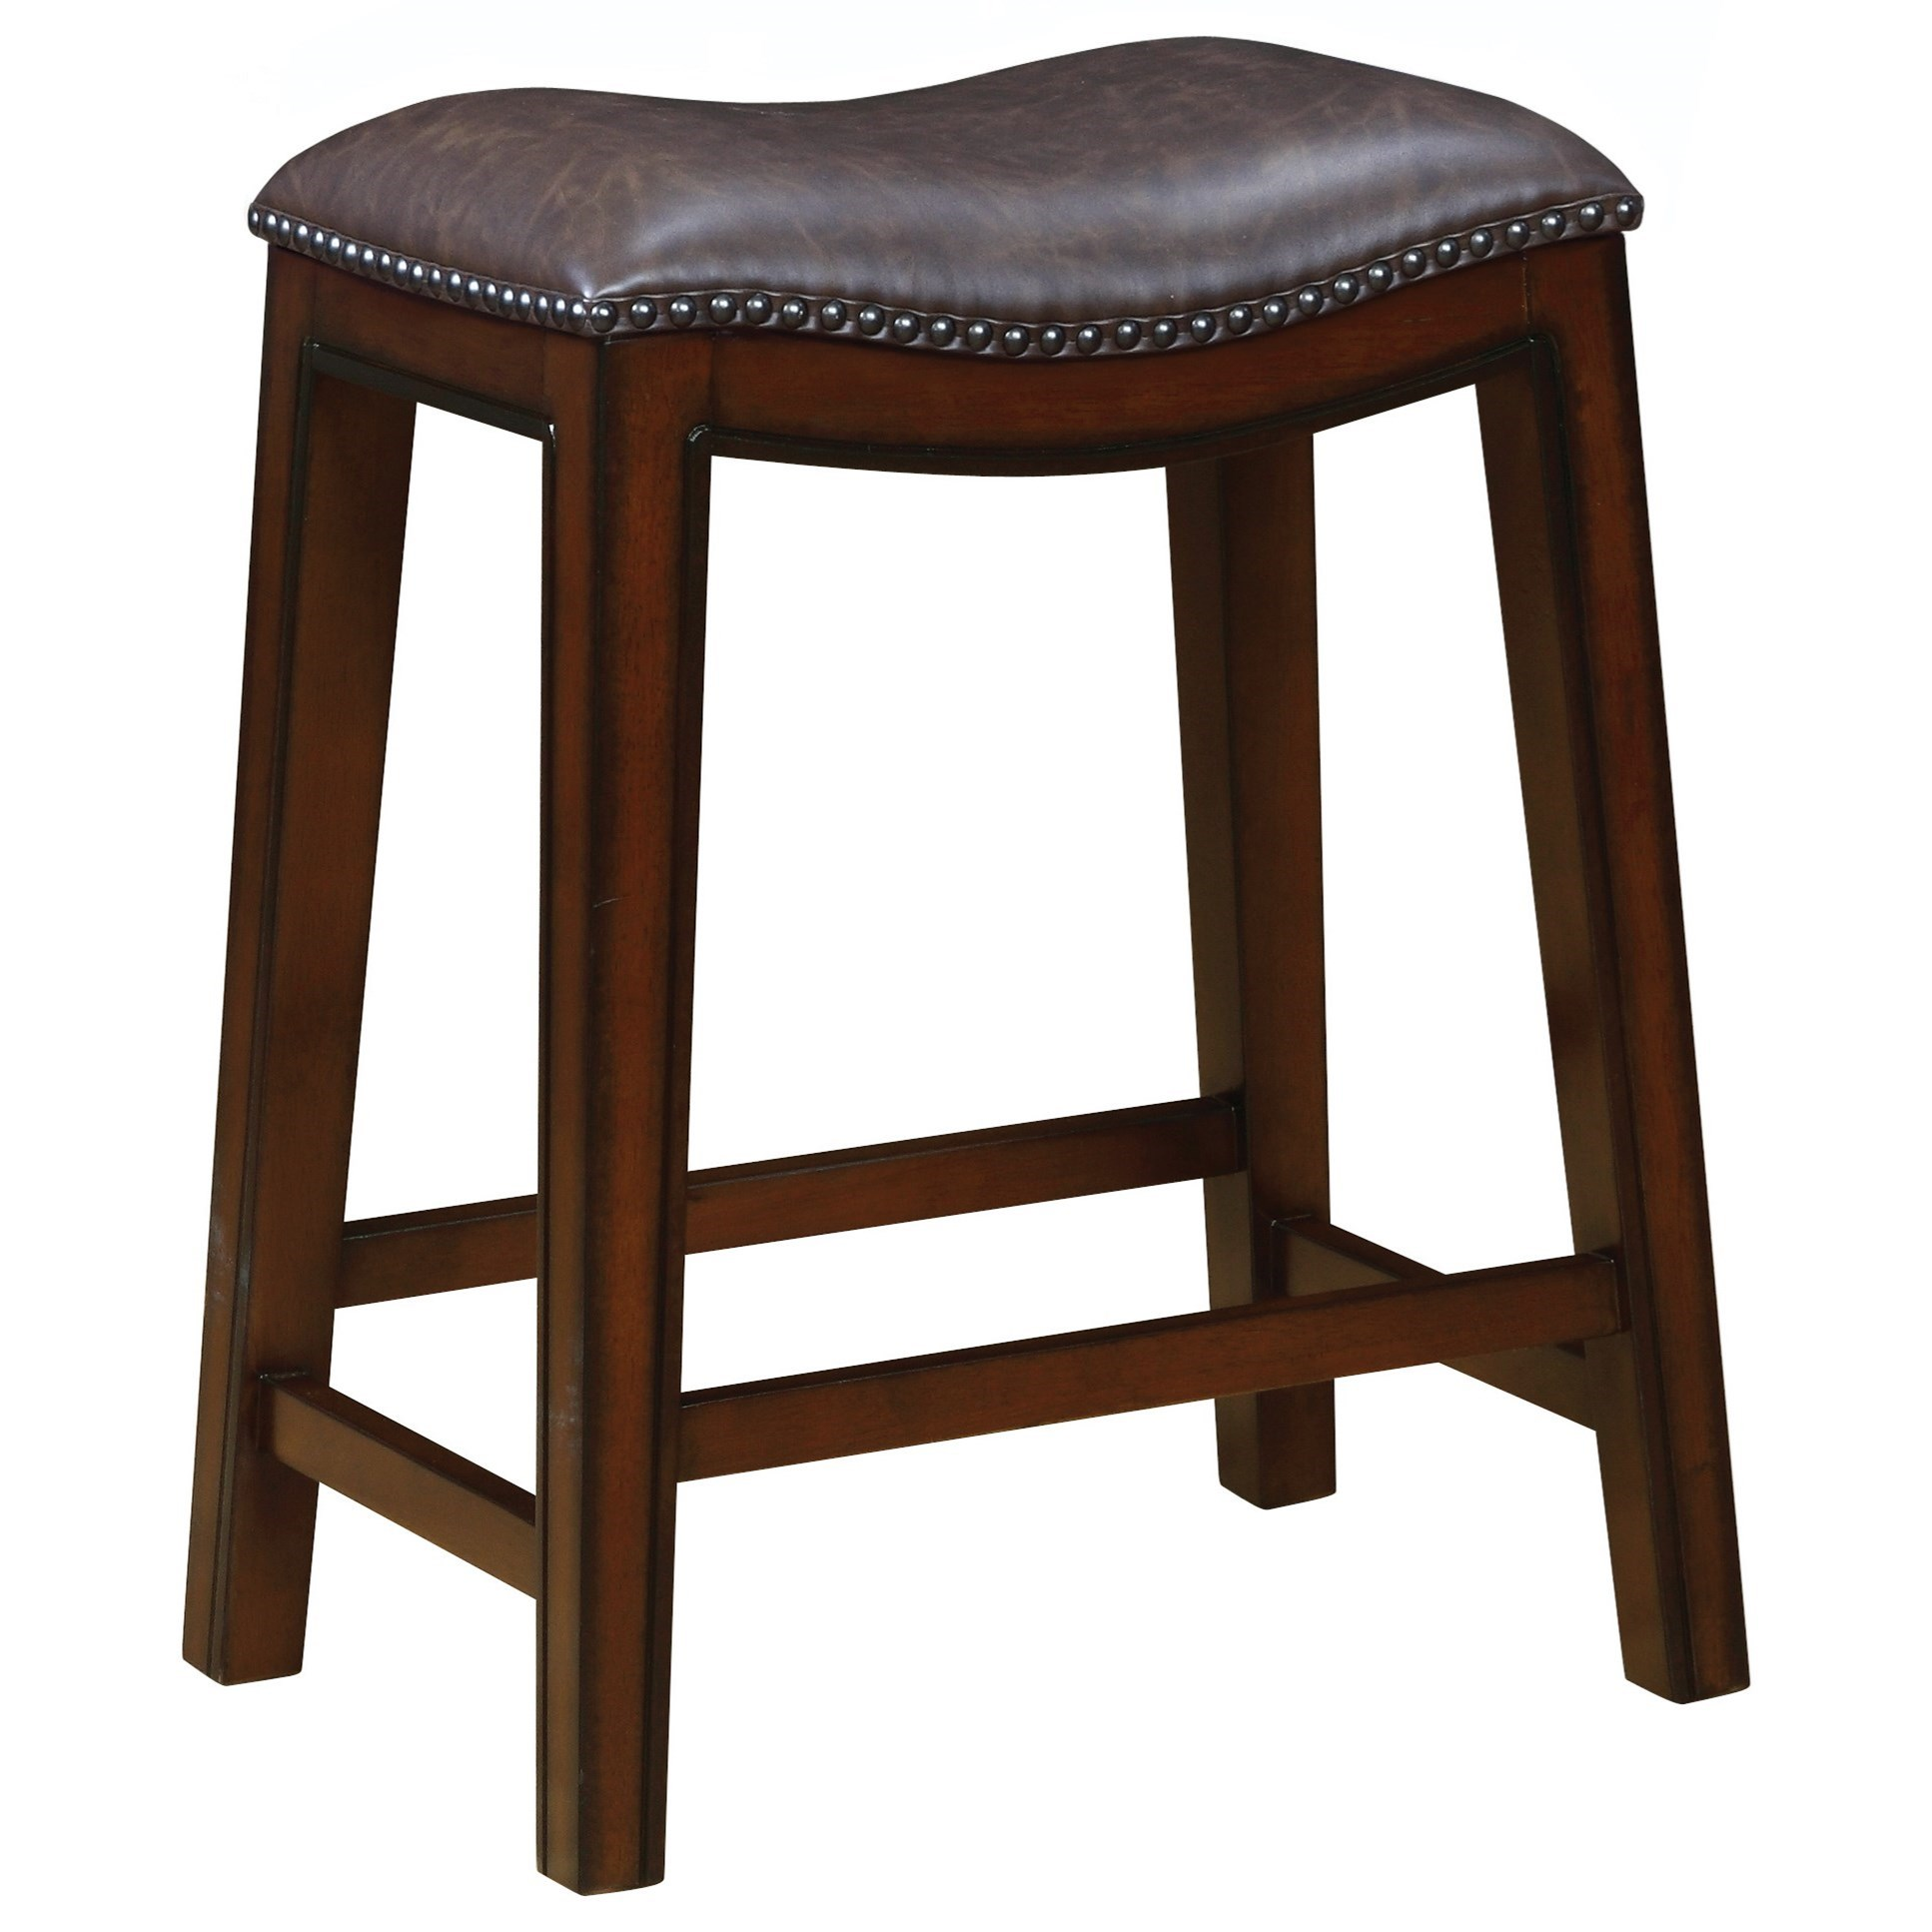 Dining Stools Coaster Dining Chairs And Bar Stools 122263 Backless